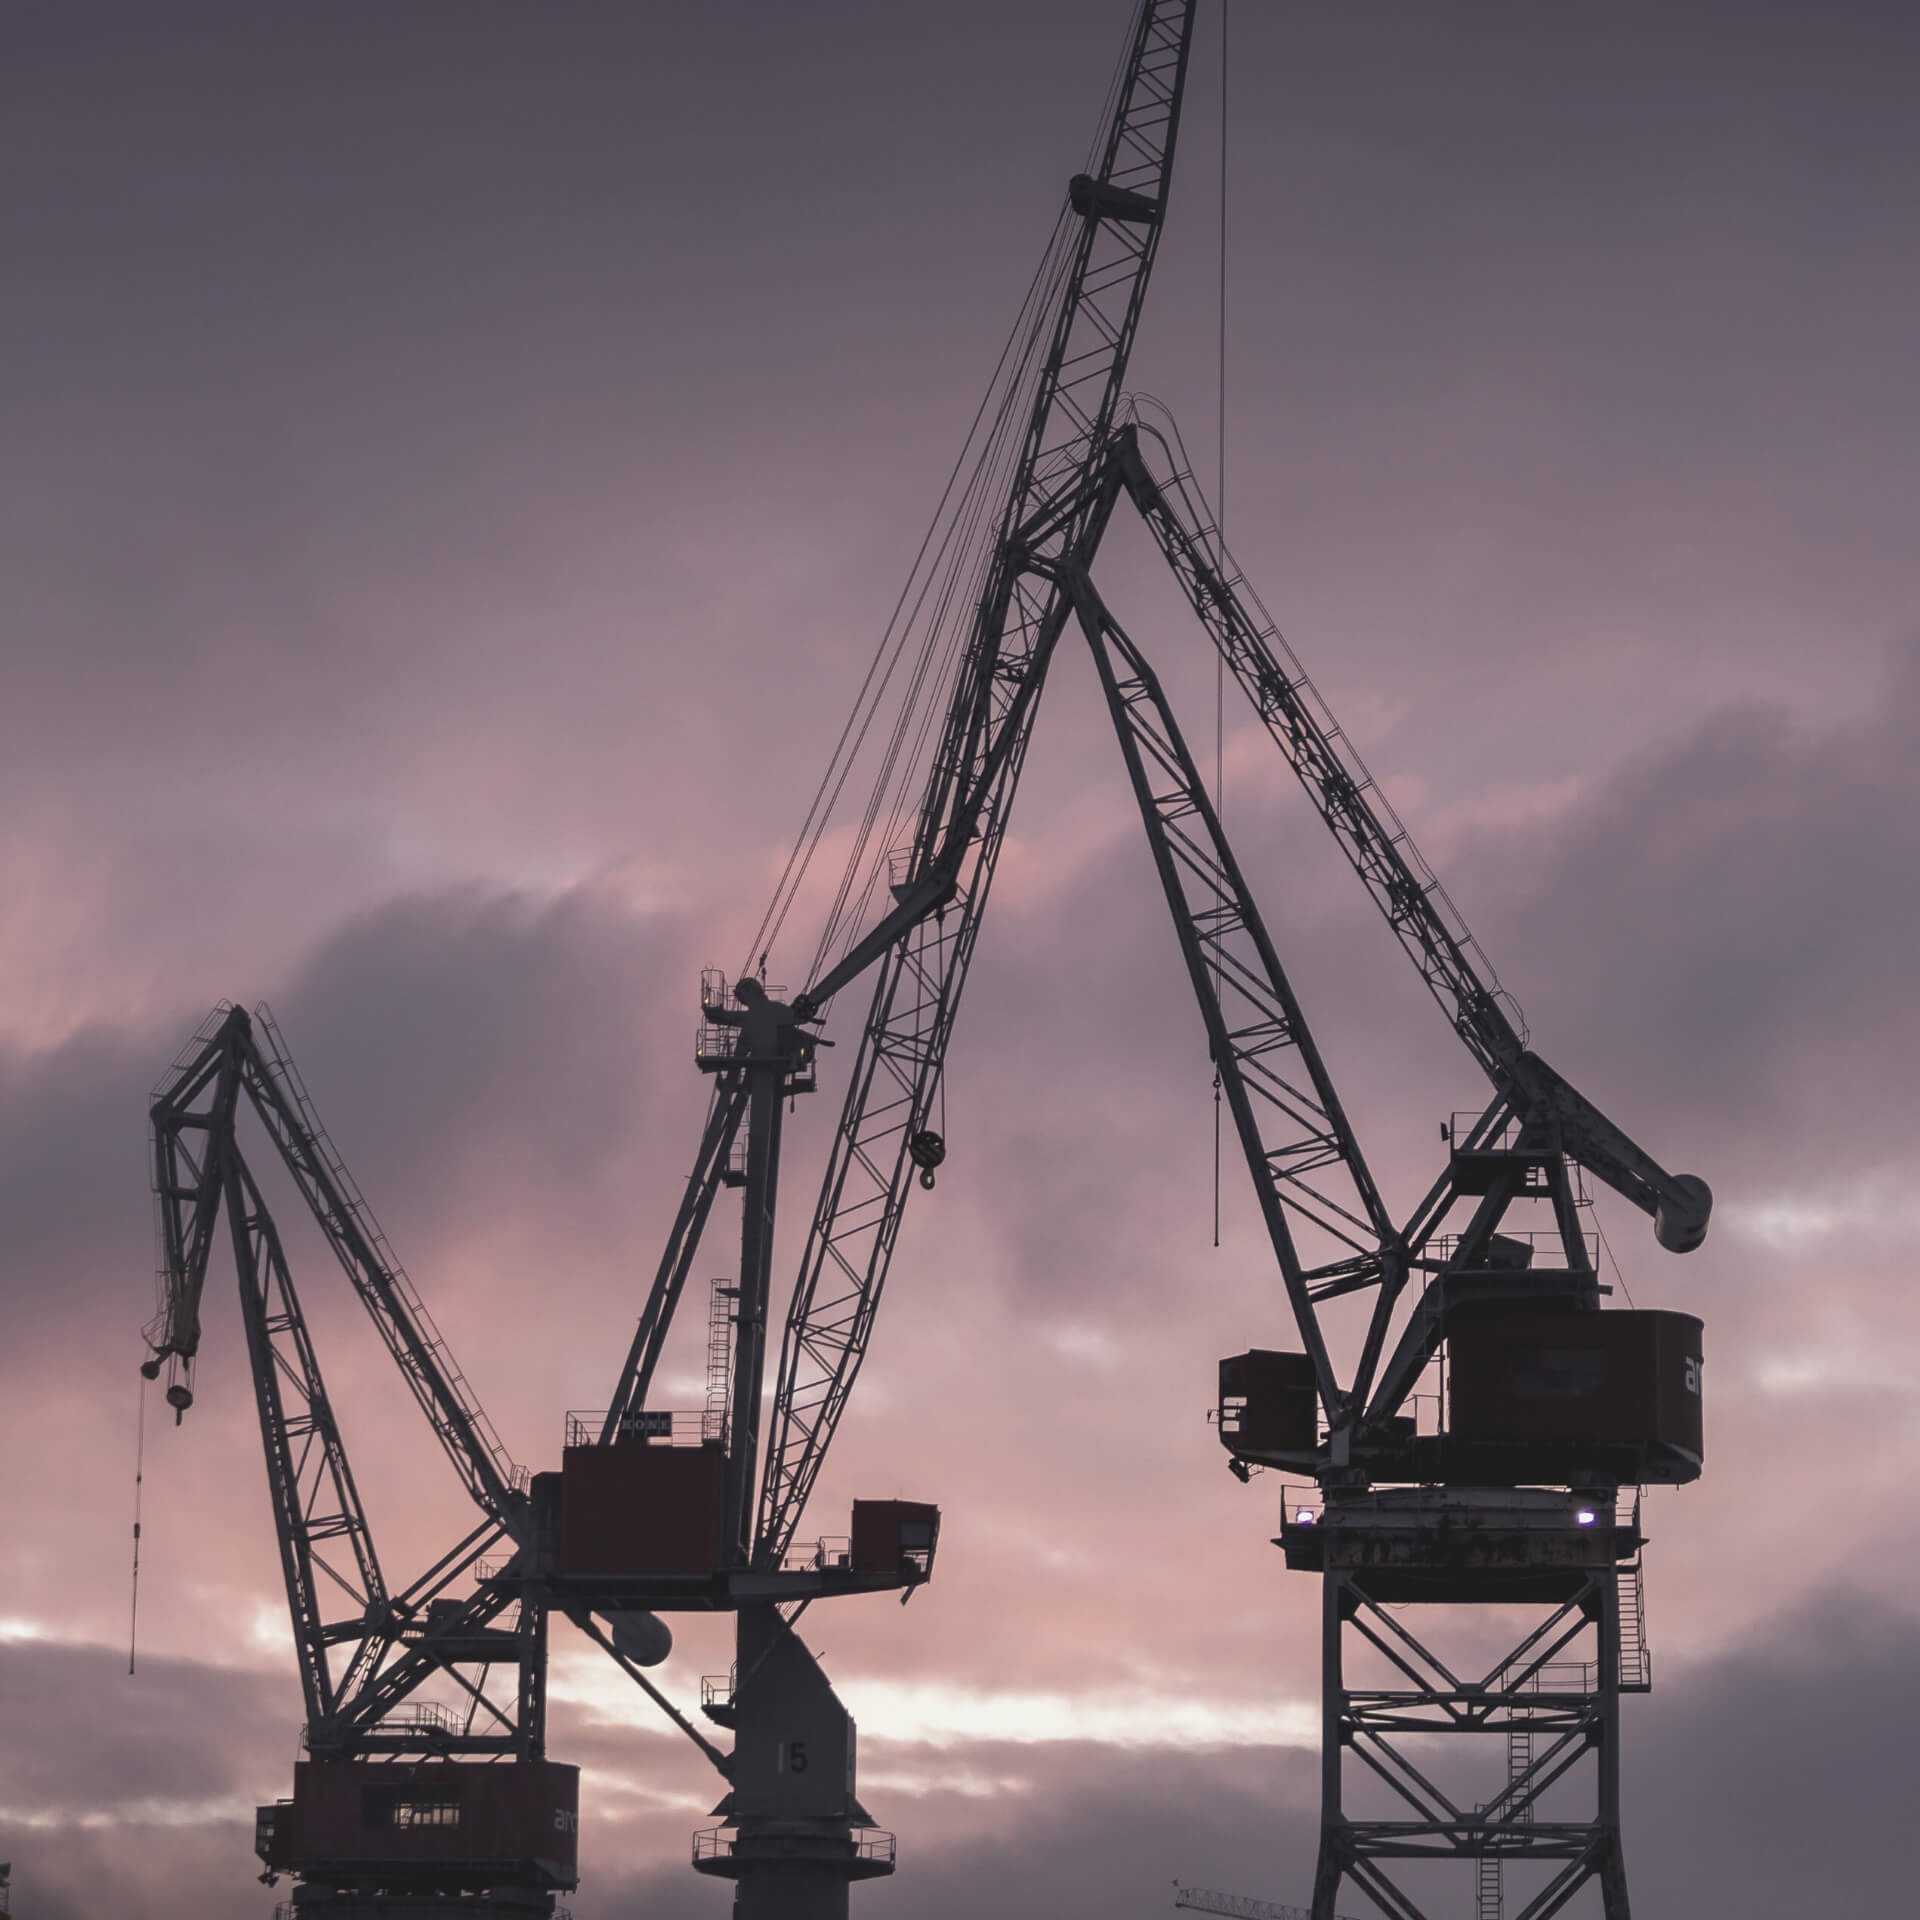 build a brand small business: construction cranes in front of blue and purple clouds